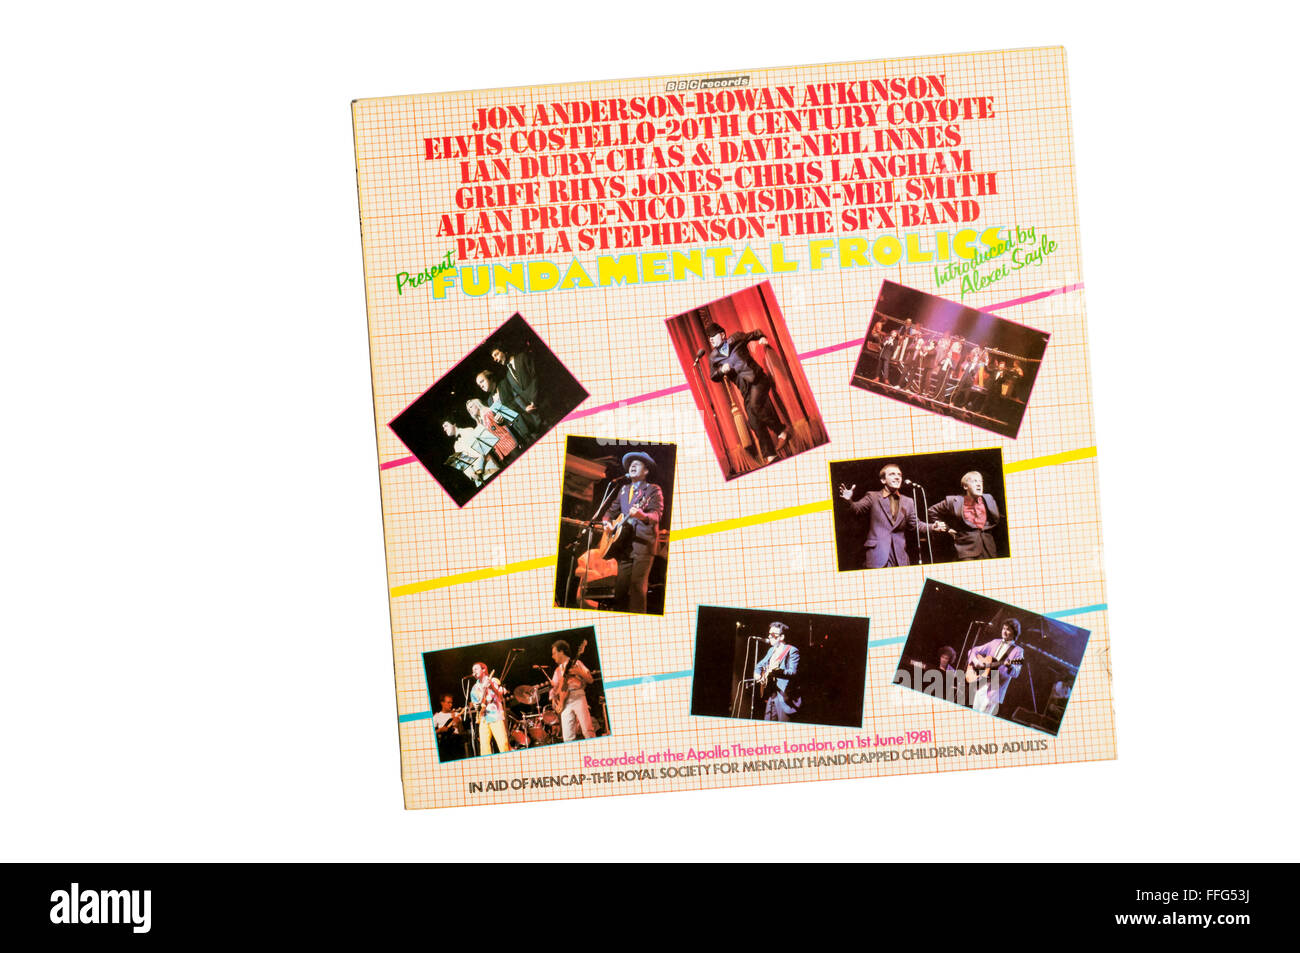 Fundamental Frolics was a 1981 charity concert in aid of Mencap. - Stock Image